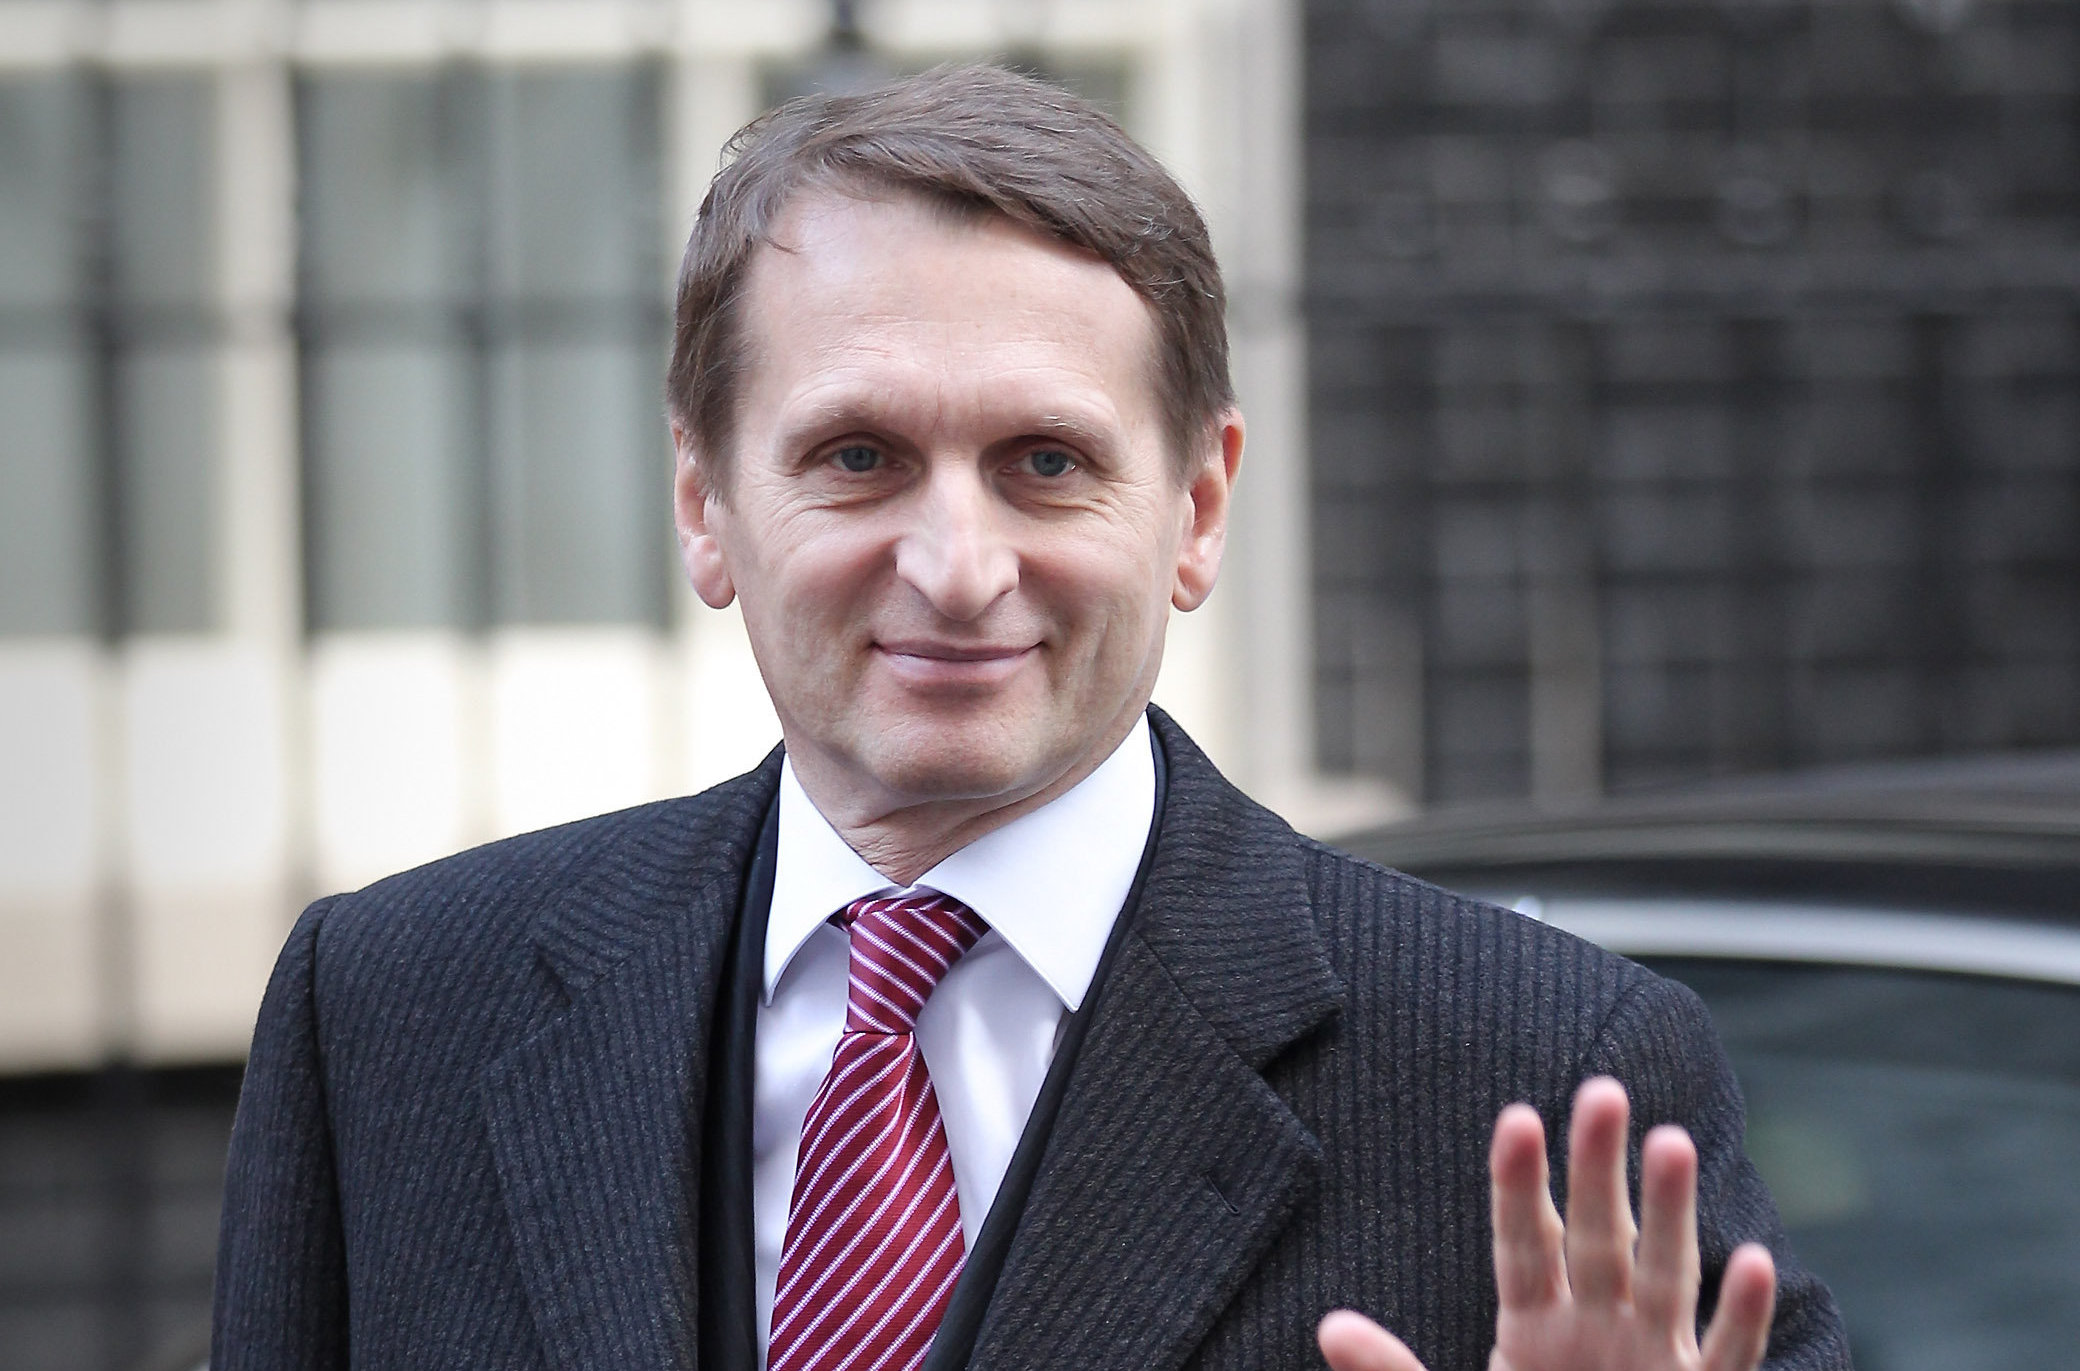 Sergei Naryshkin was sanctioned by the US in 2014 in response to Russian aggression in Ukraine. Photograph: Getty